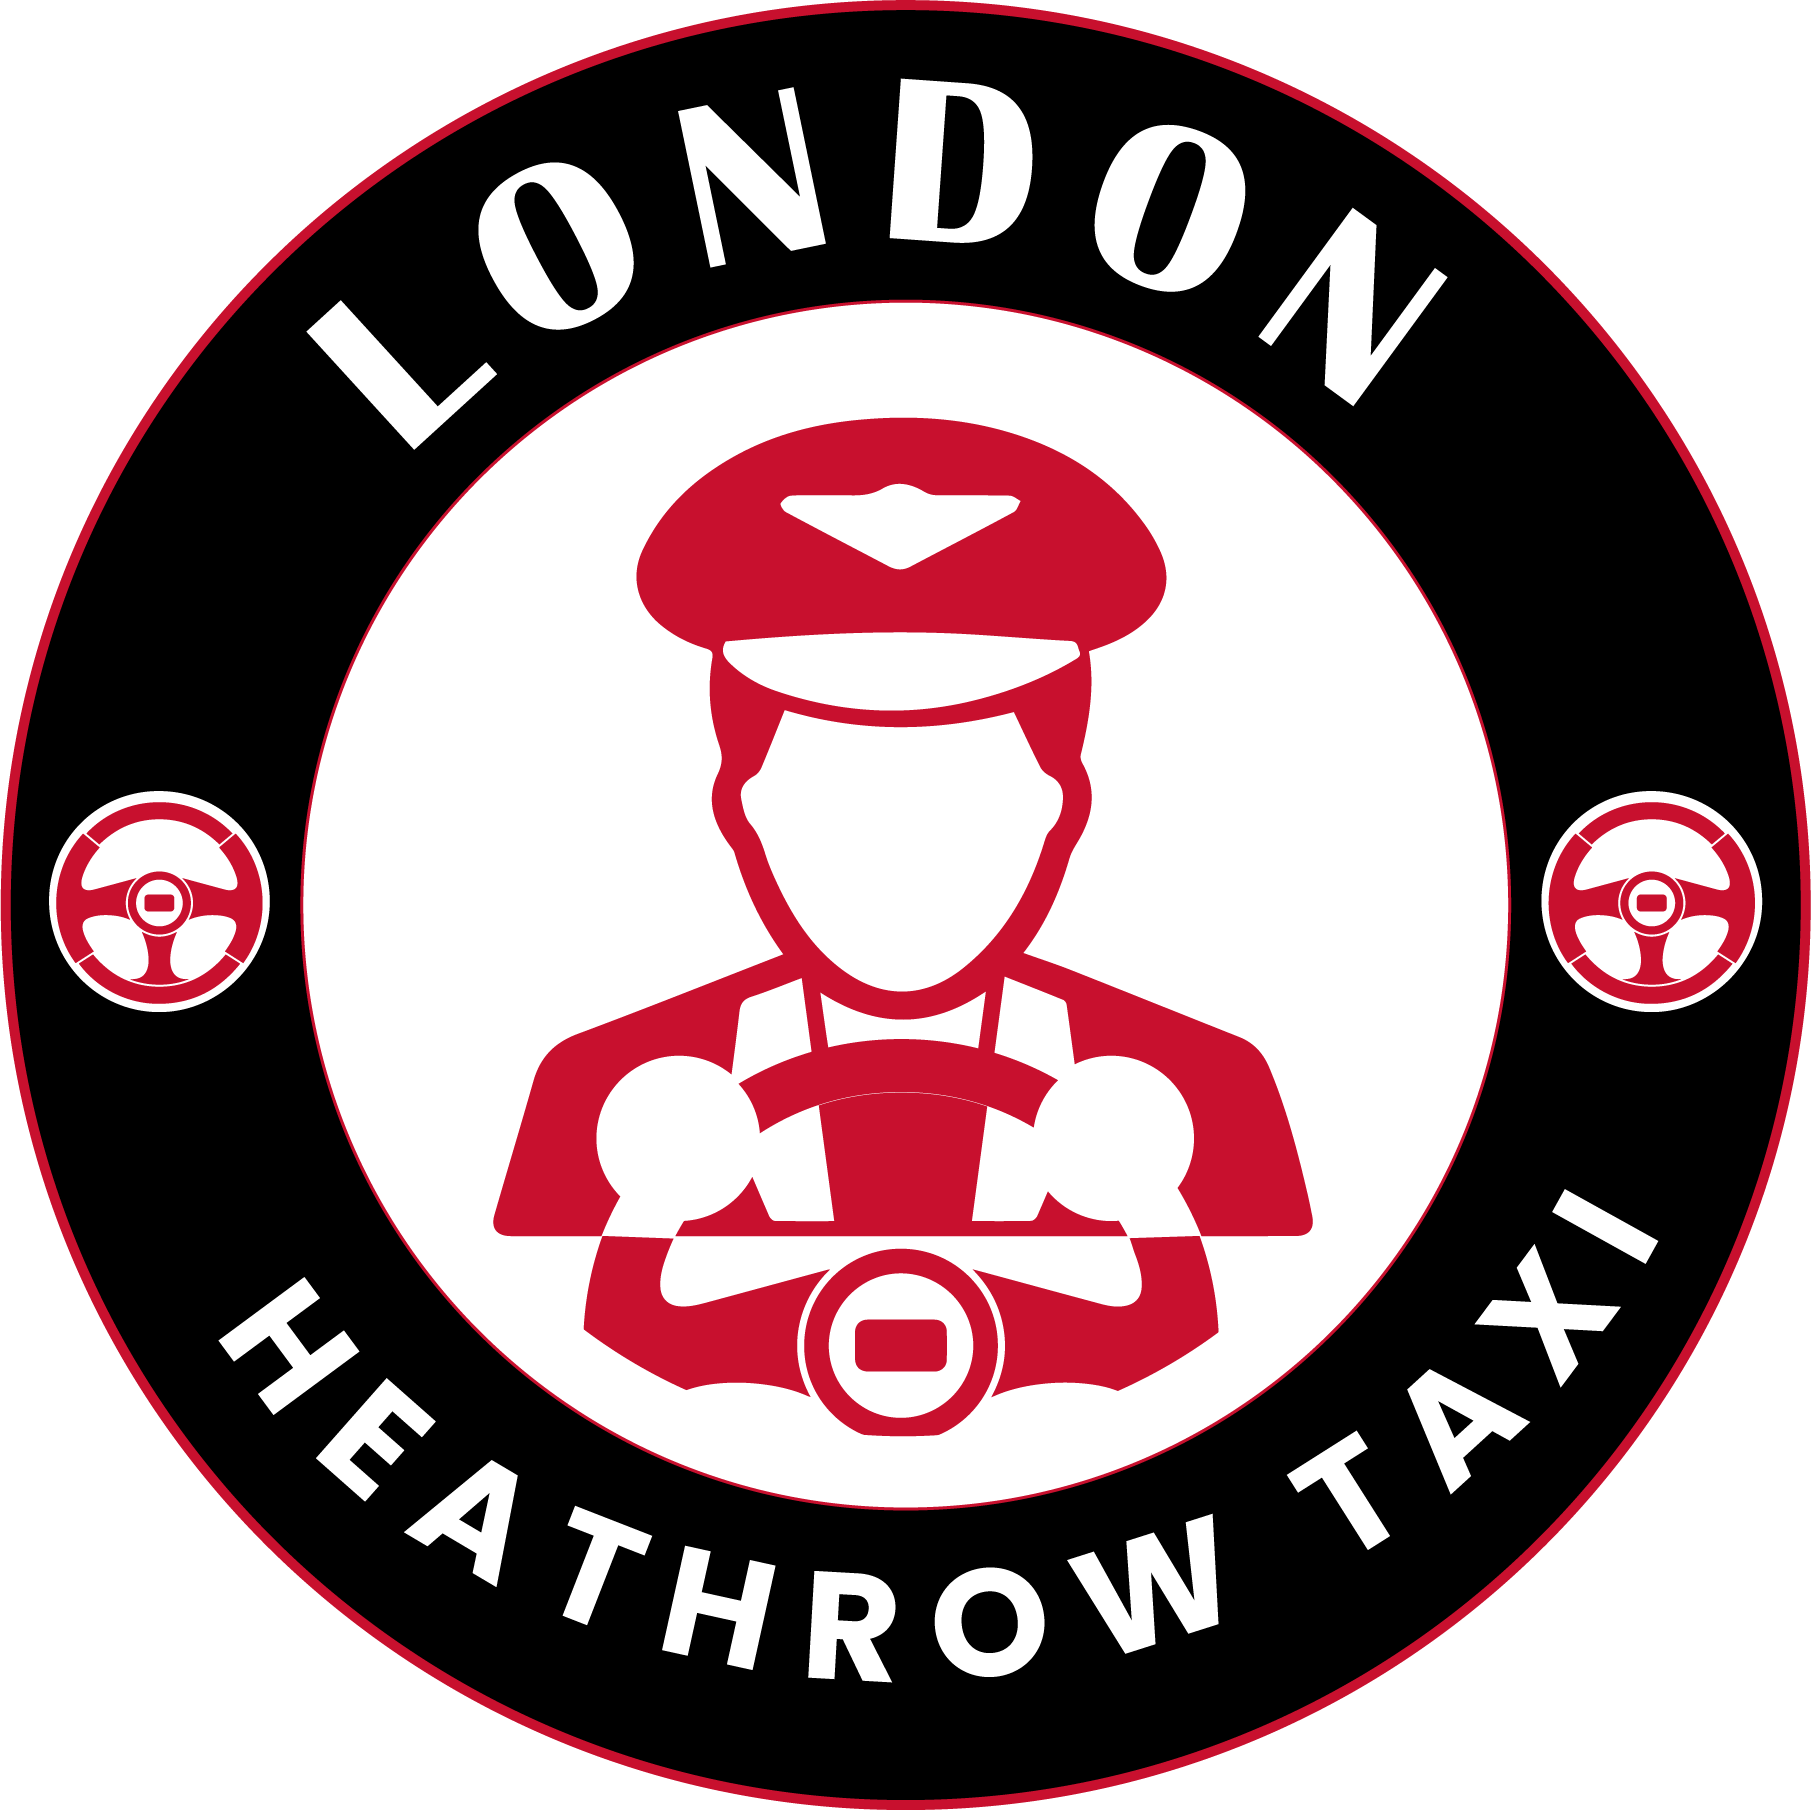 London Heathrow Taxi